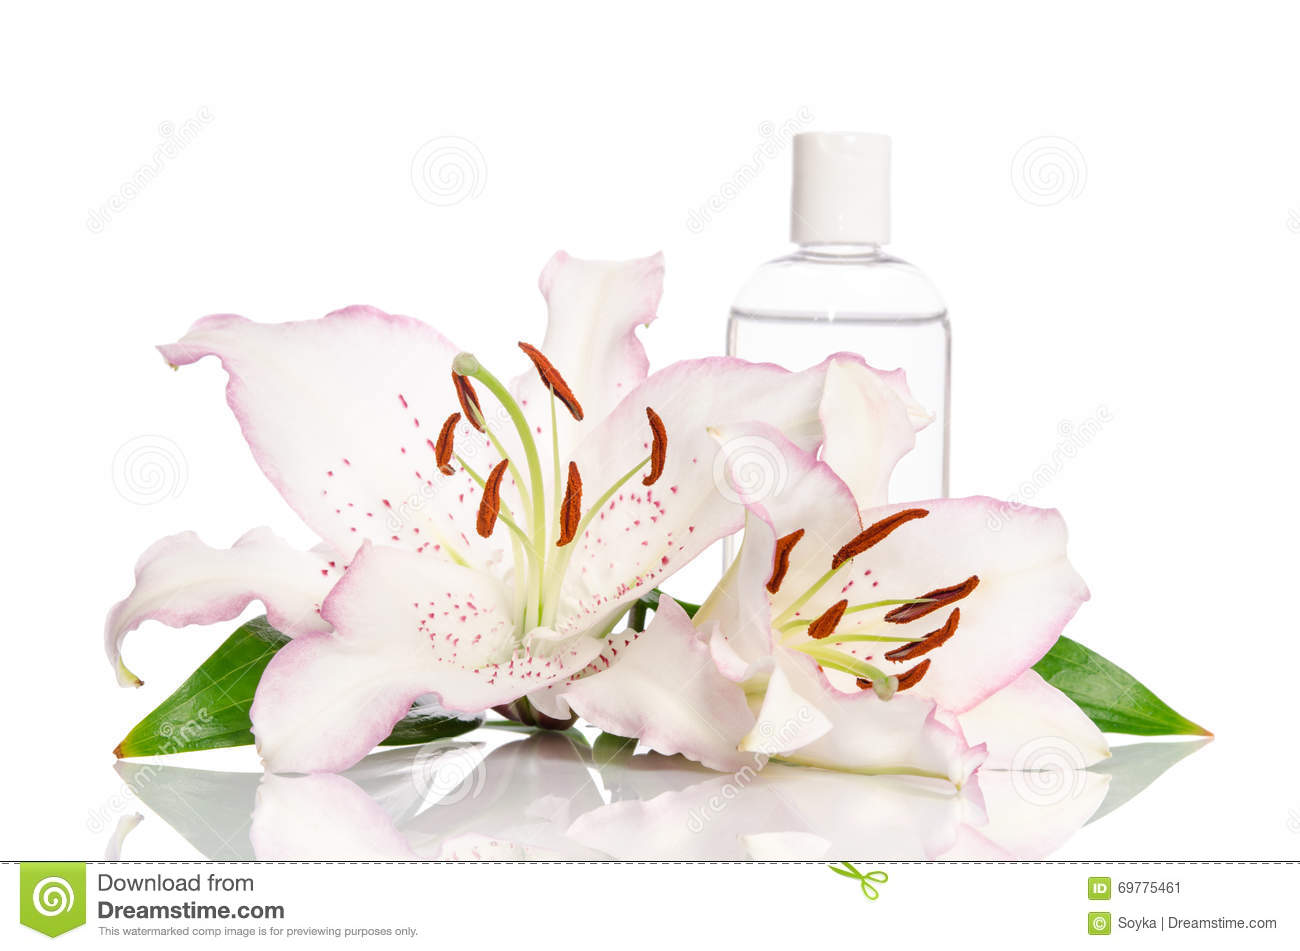 Tonic for skin care with lily flower stock image image of flower tonic for skin care with lily flower izmirmasajfo